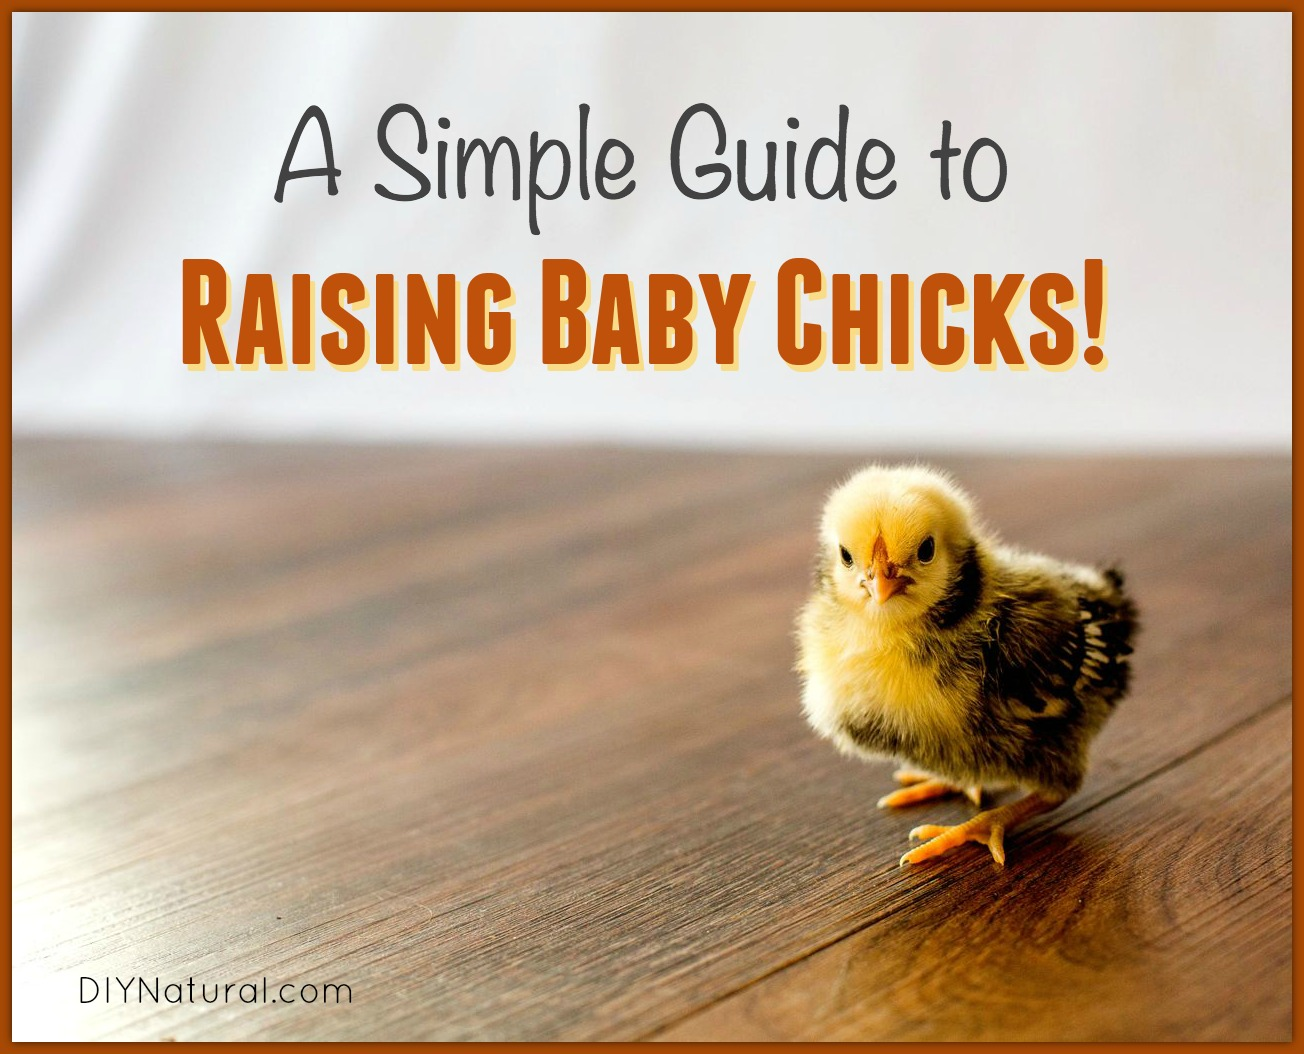 Raising Chicks (Baby Chickens) Is